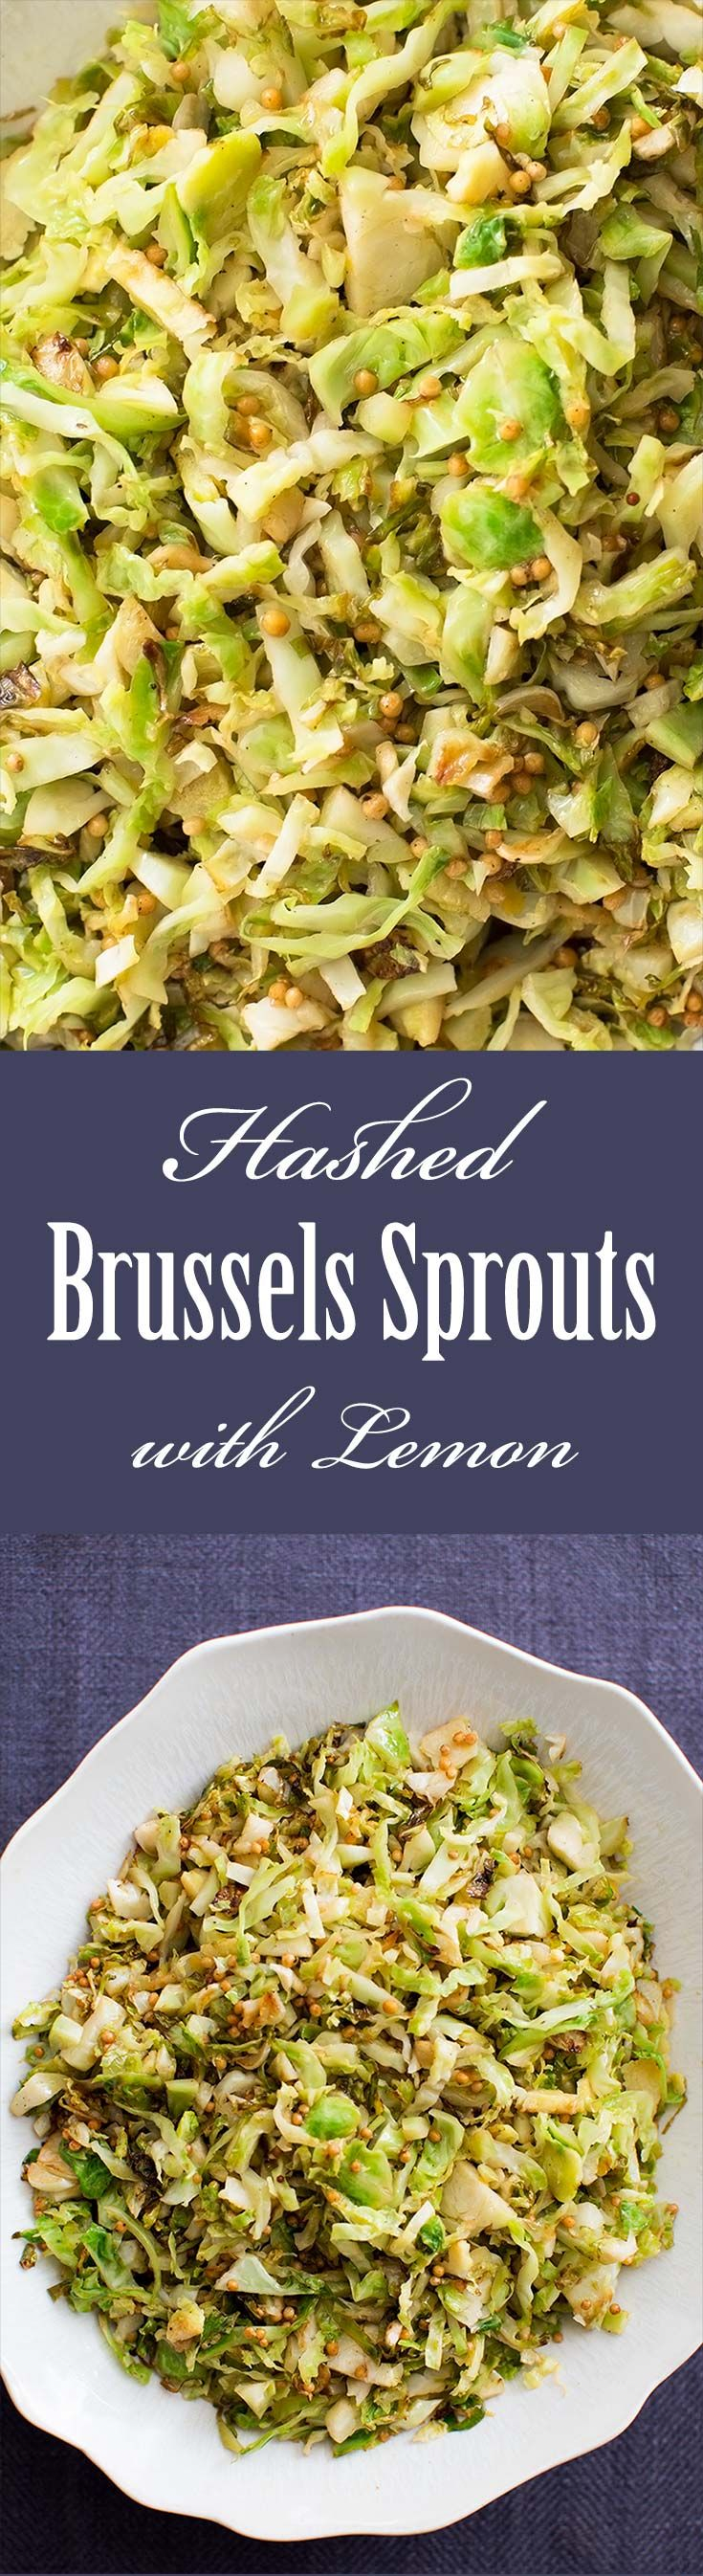 Hashed Brussels Sprouts with Lemon ~ Hashed brussels sprouts made with ...